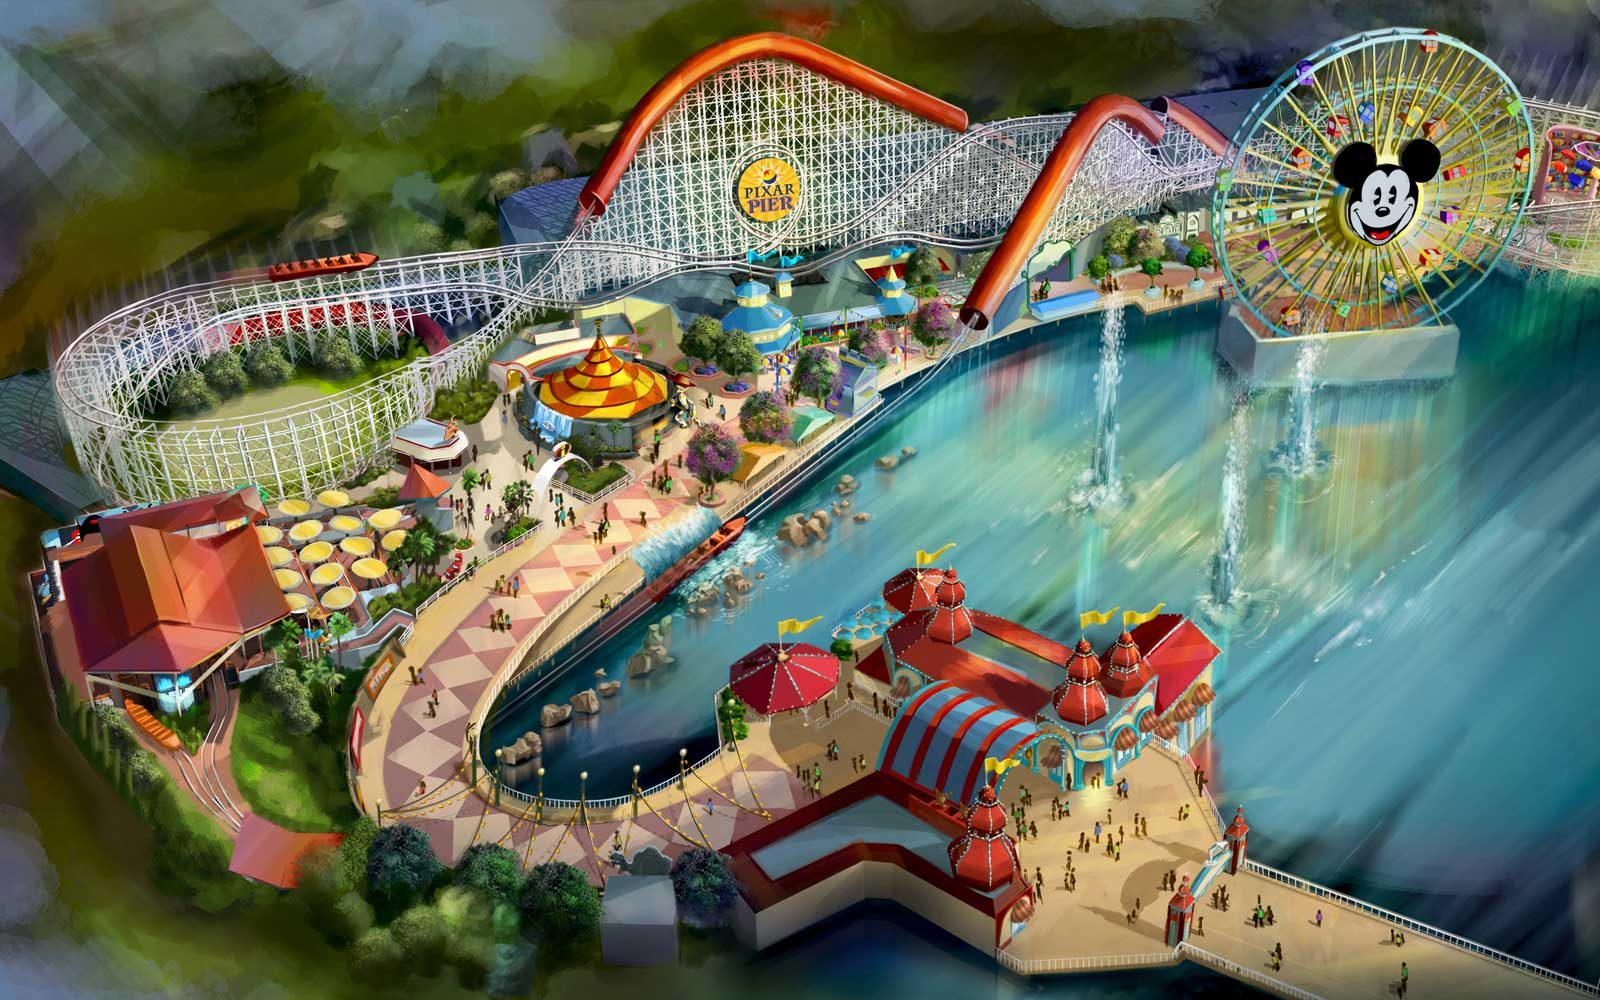 Rendering of Pixar Pier, coming soon to Disney California Adventure